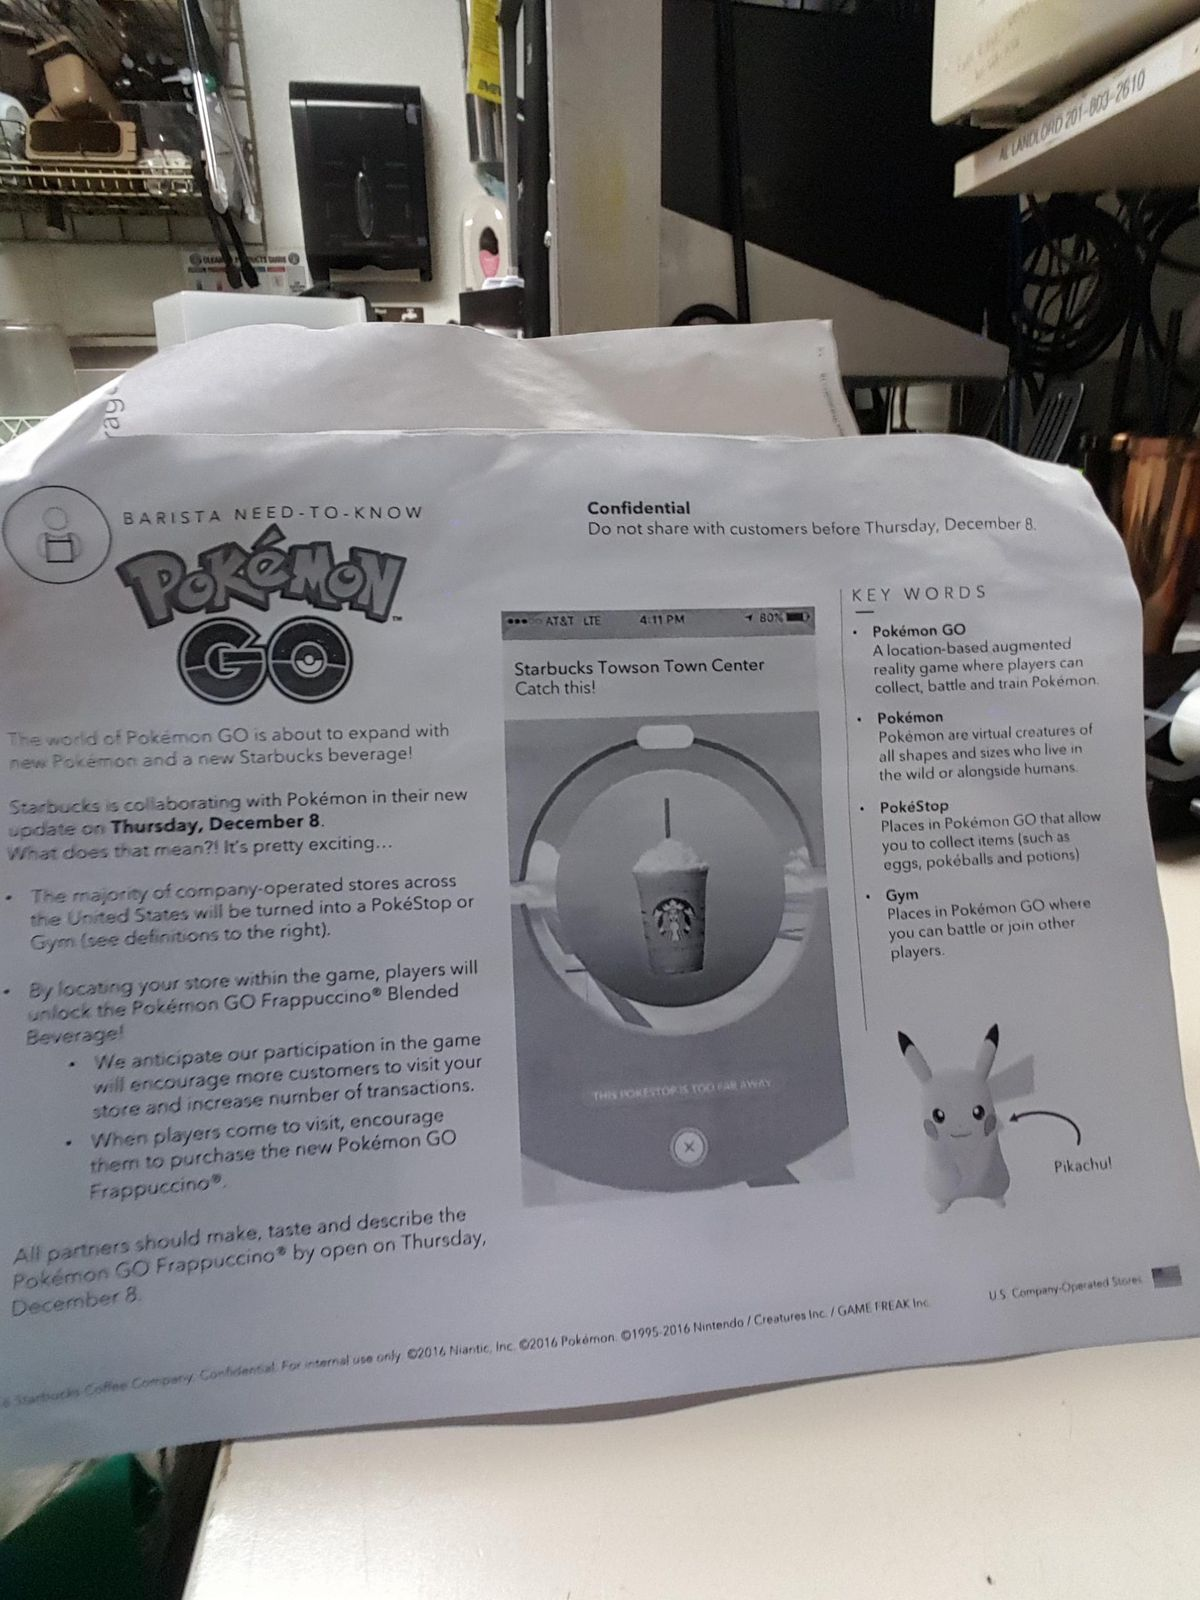 Pokémon Go leaks point to big Starbucks event in the works